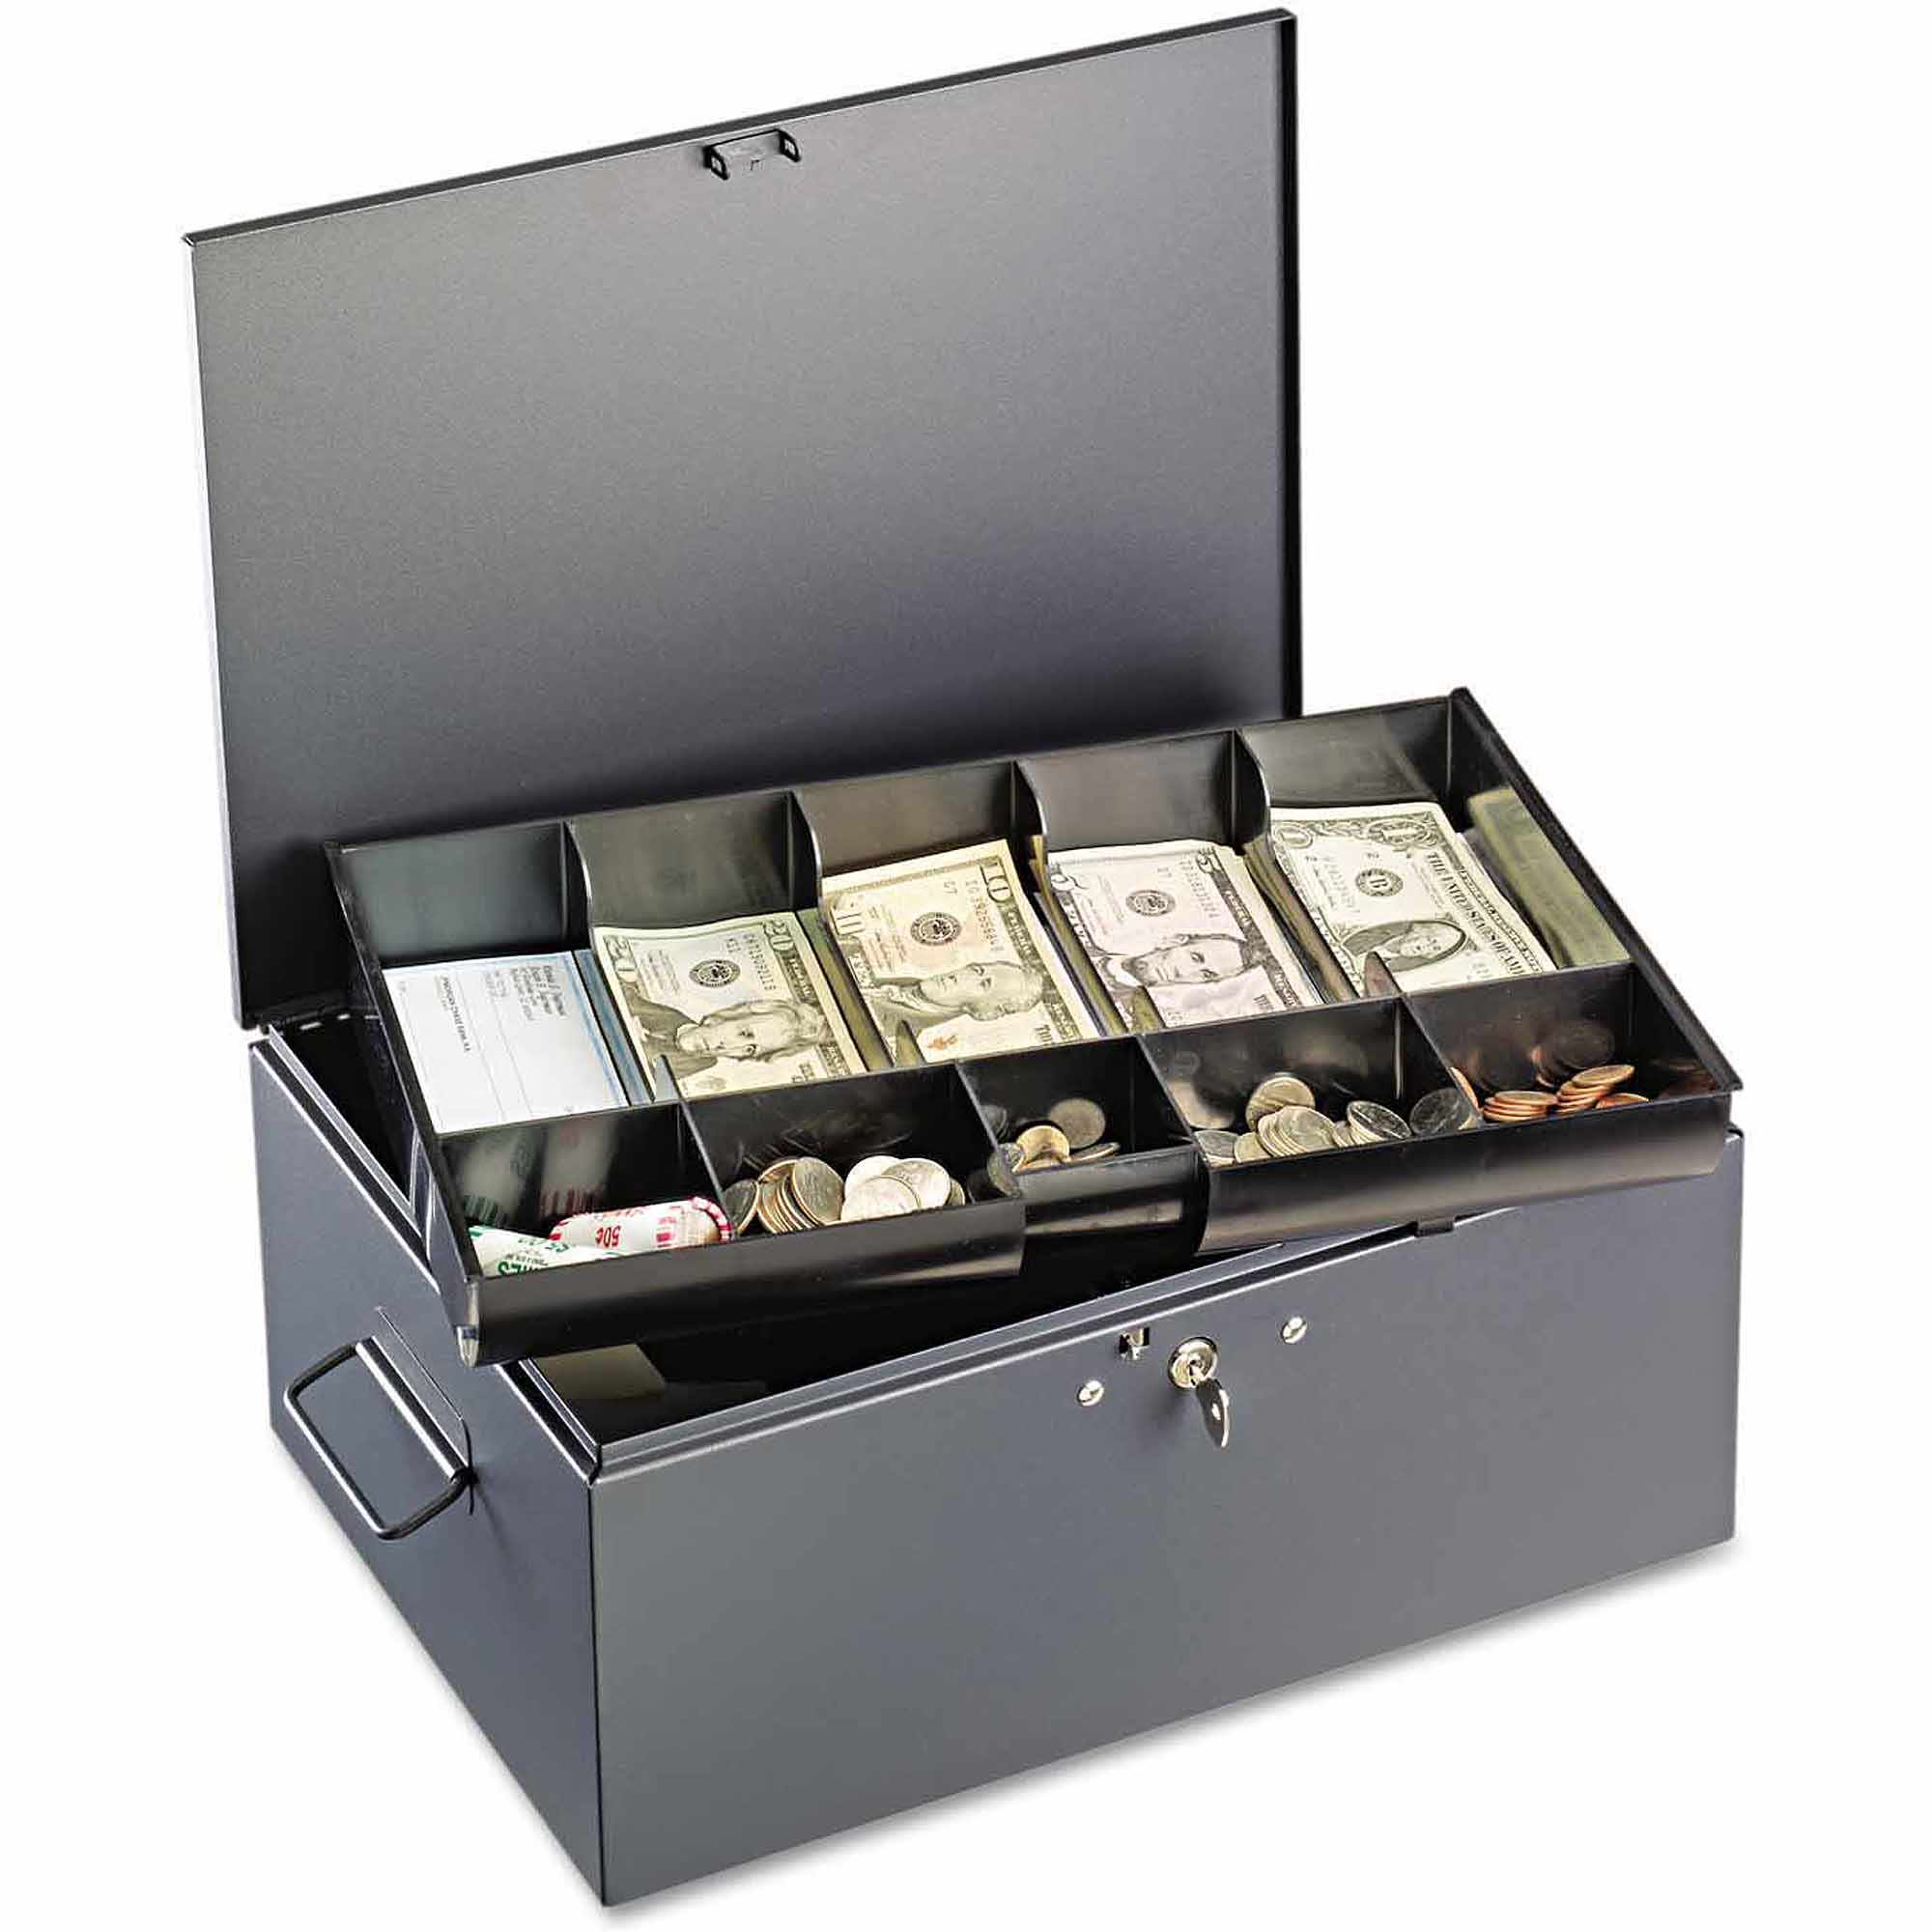 SteelMaster Extra Large Cash Box with Handles, Disc Tumbler Lock, Grey